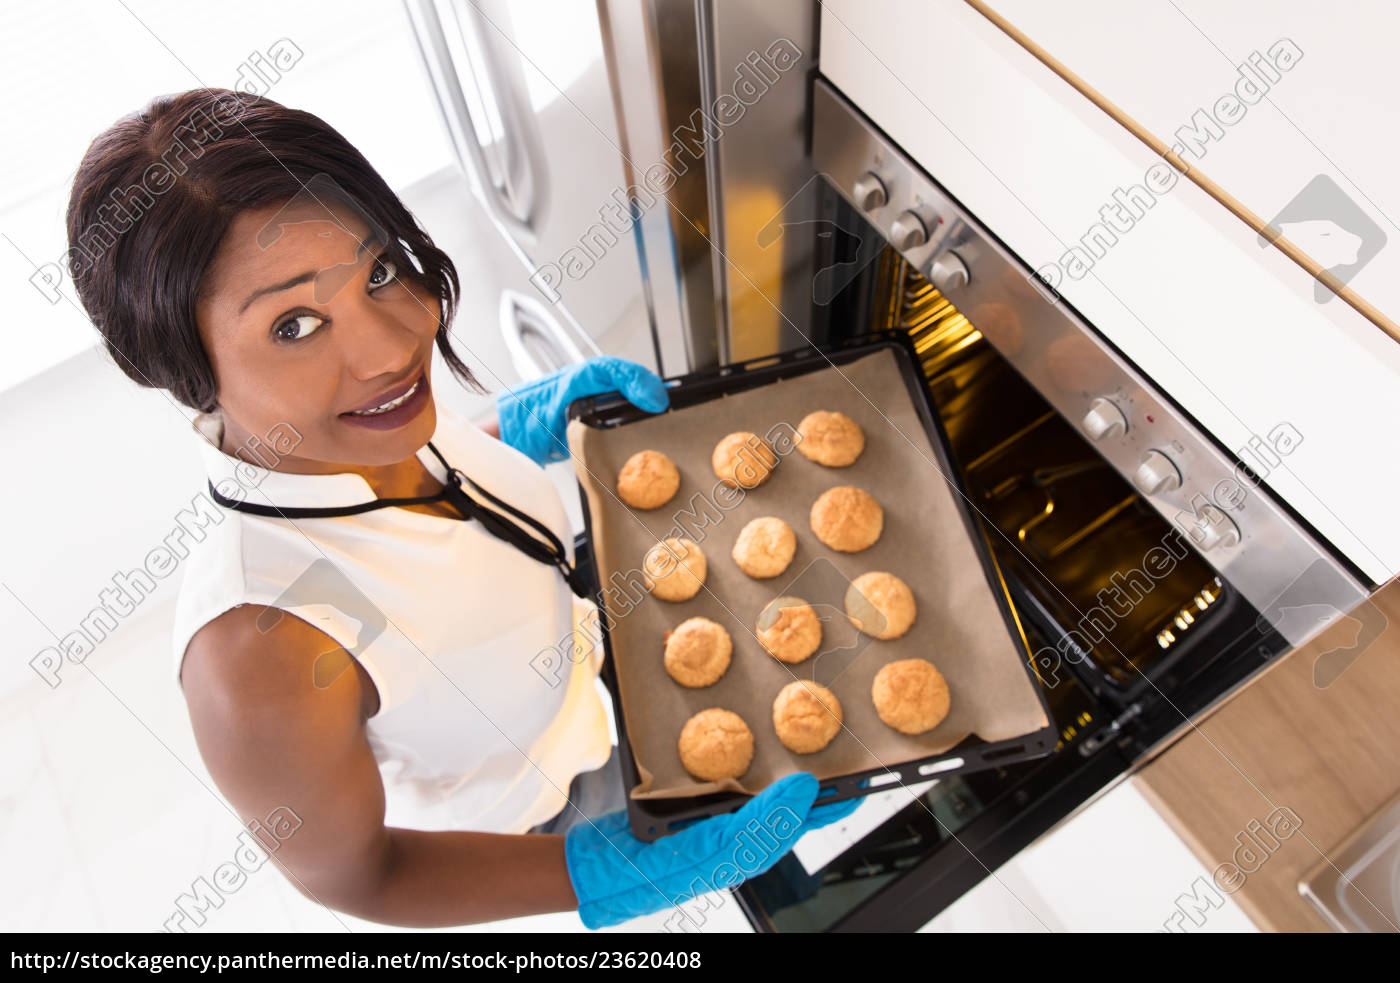 woman, taking, out, tray, of, baked - 23620408